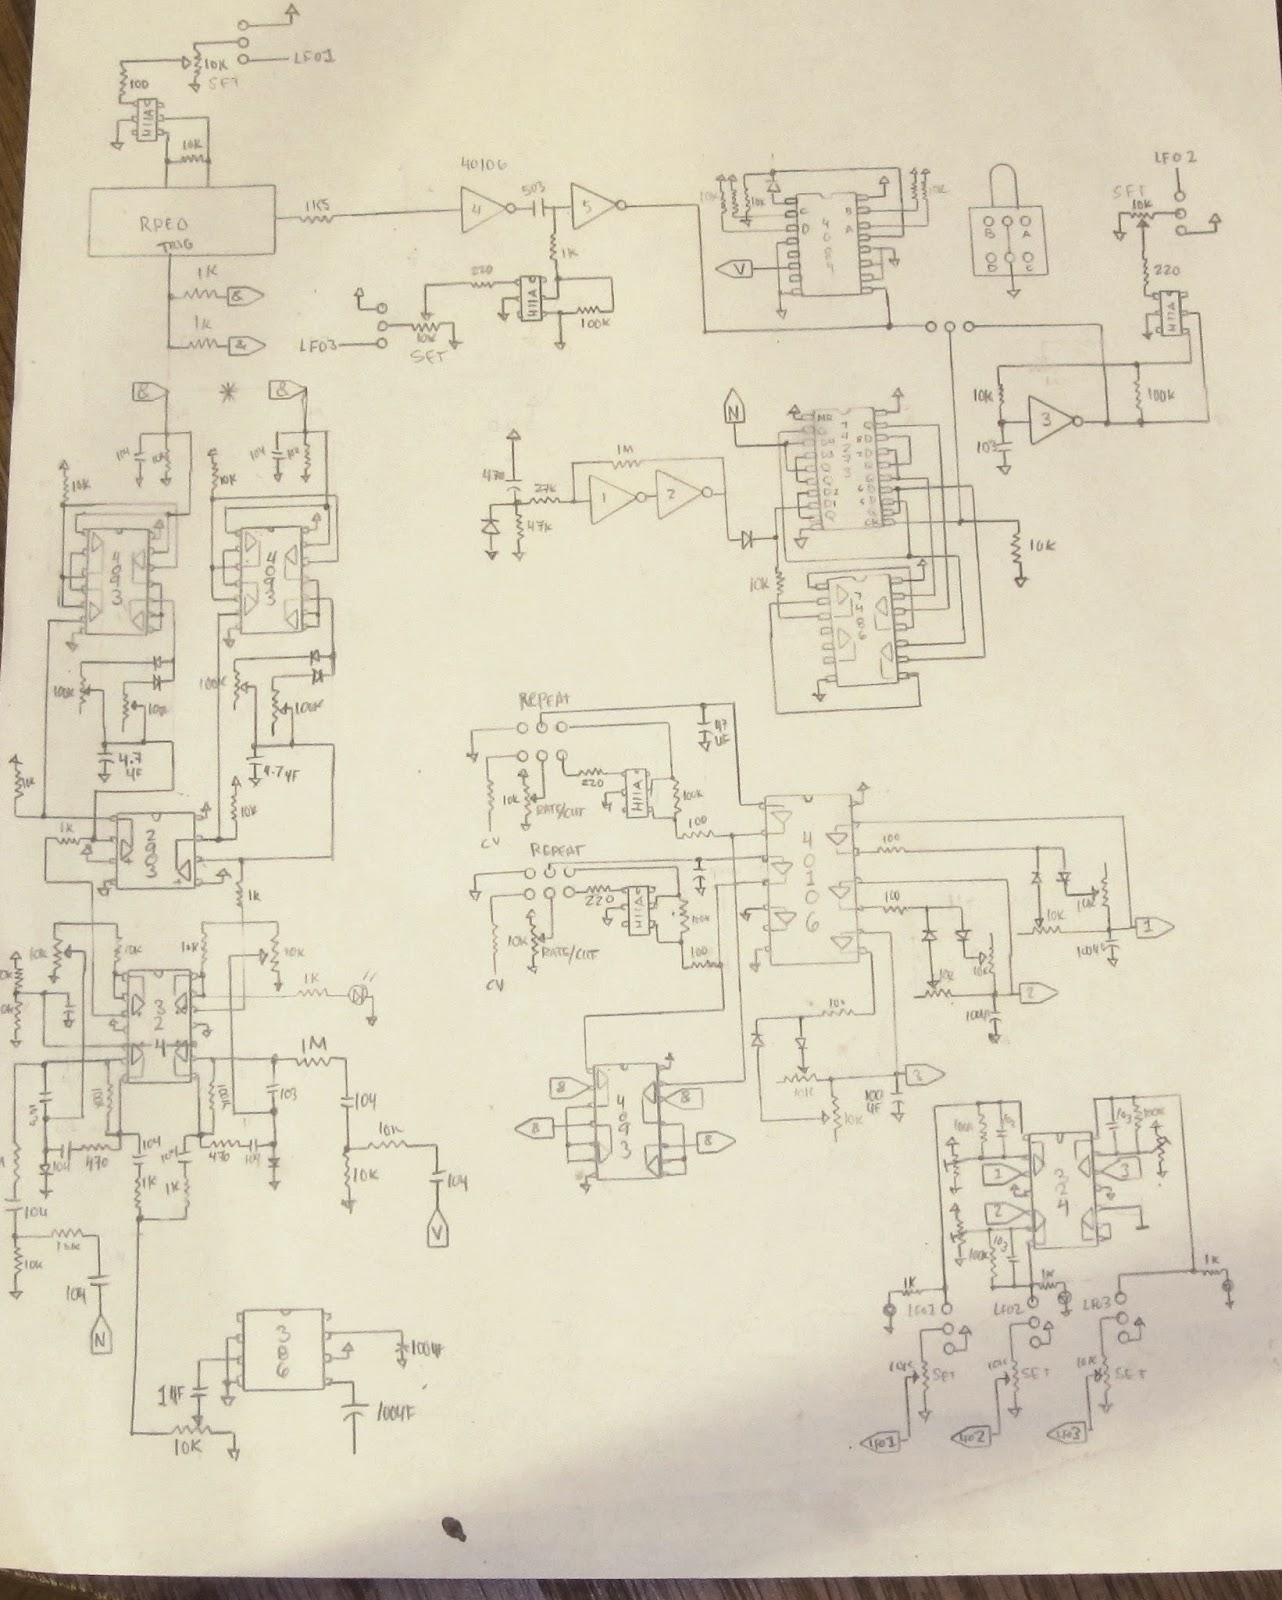 Noystoise2018 Noise High Frequency Generator Schematic Lower 8 Keysf3 C4 For The Missing 8f5 C6 It Makes Things A Little Confused But Sounds Much Better When Its Tracking Keys